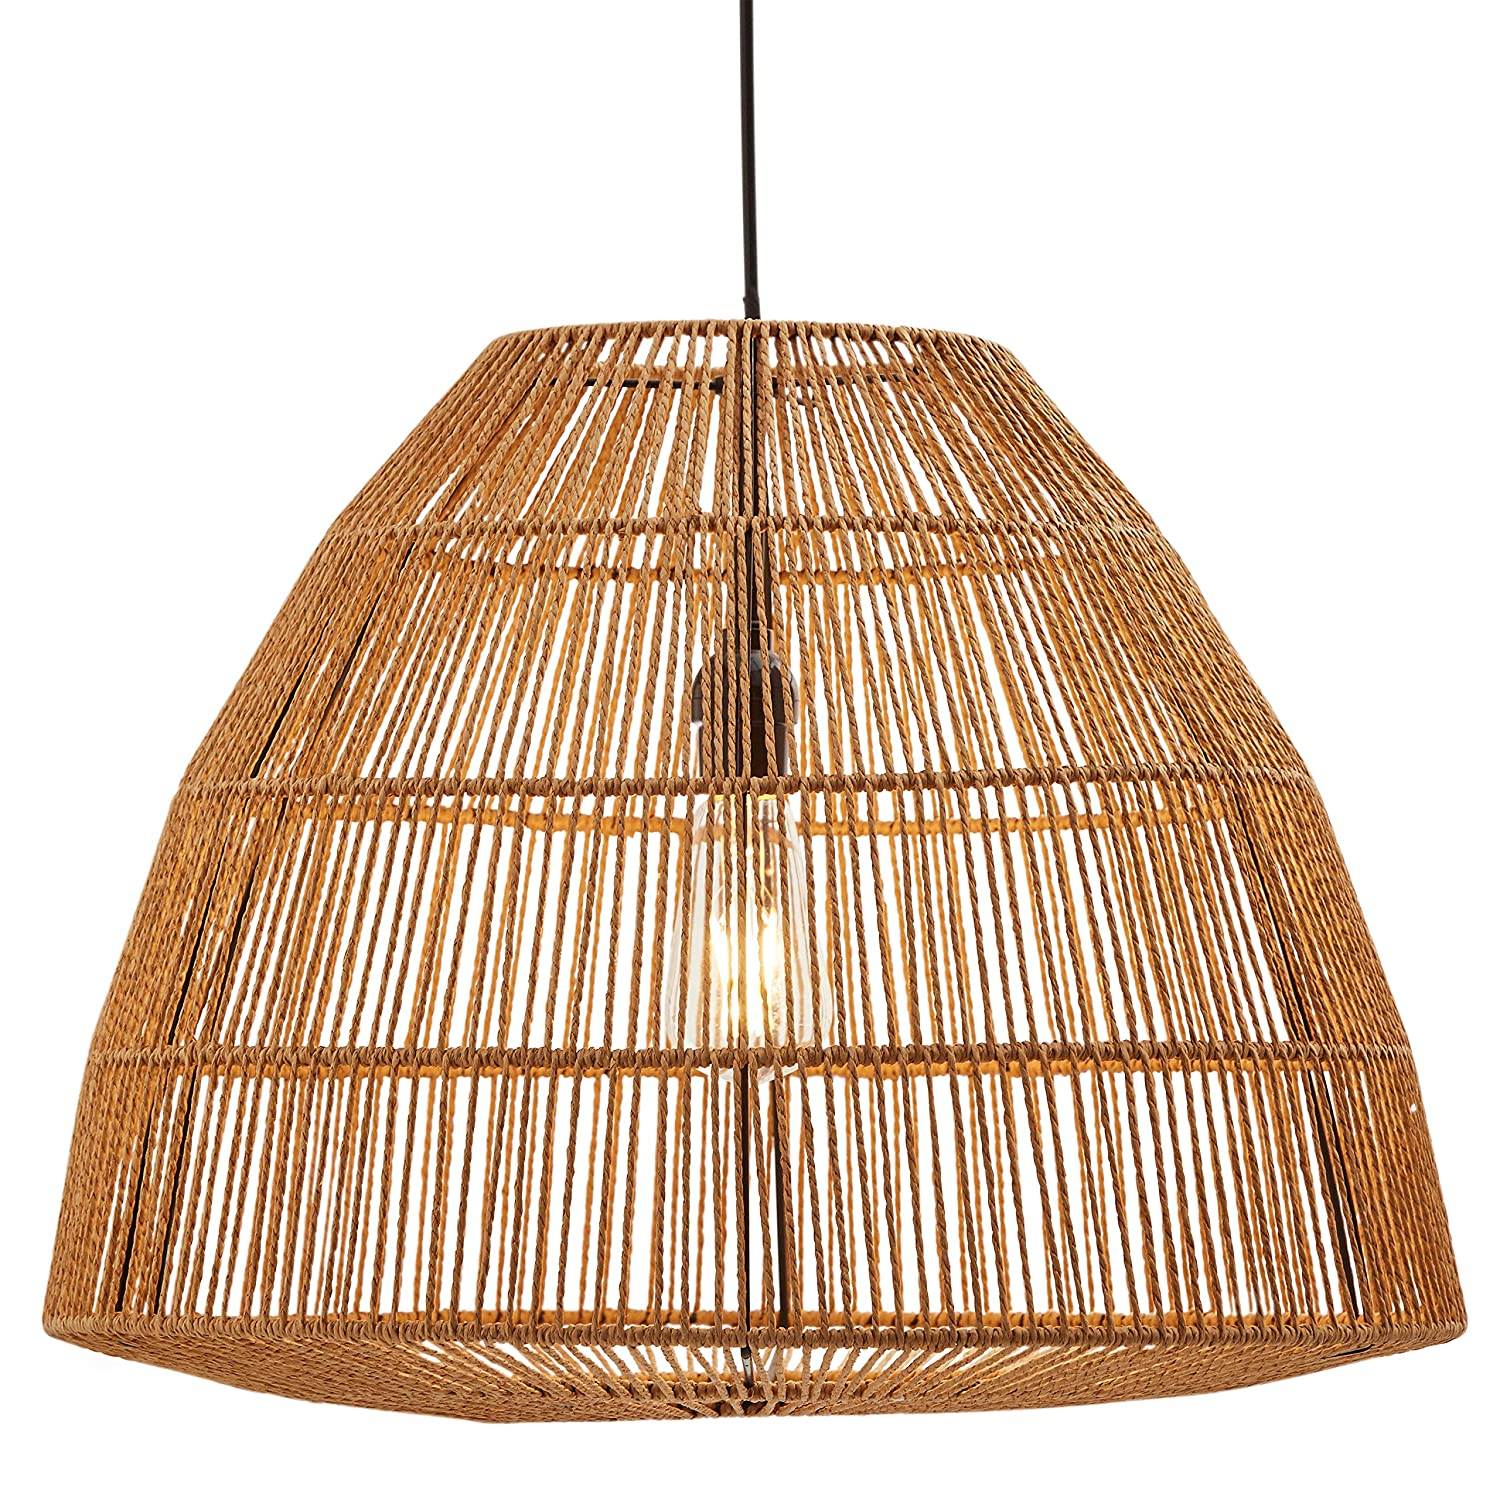 best sneakers b495e c59bf Stone & Beam Rustic Global Round Woven Lamp Shade Hanging Ceiling Pendant  Fixture with Light Bulb, 14.75